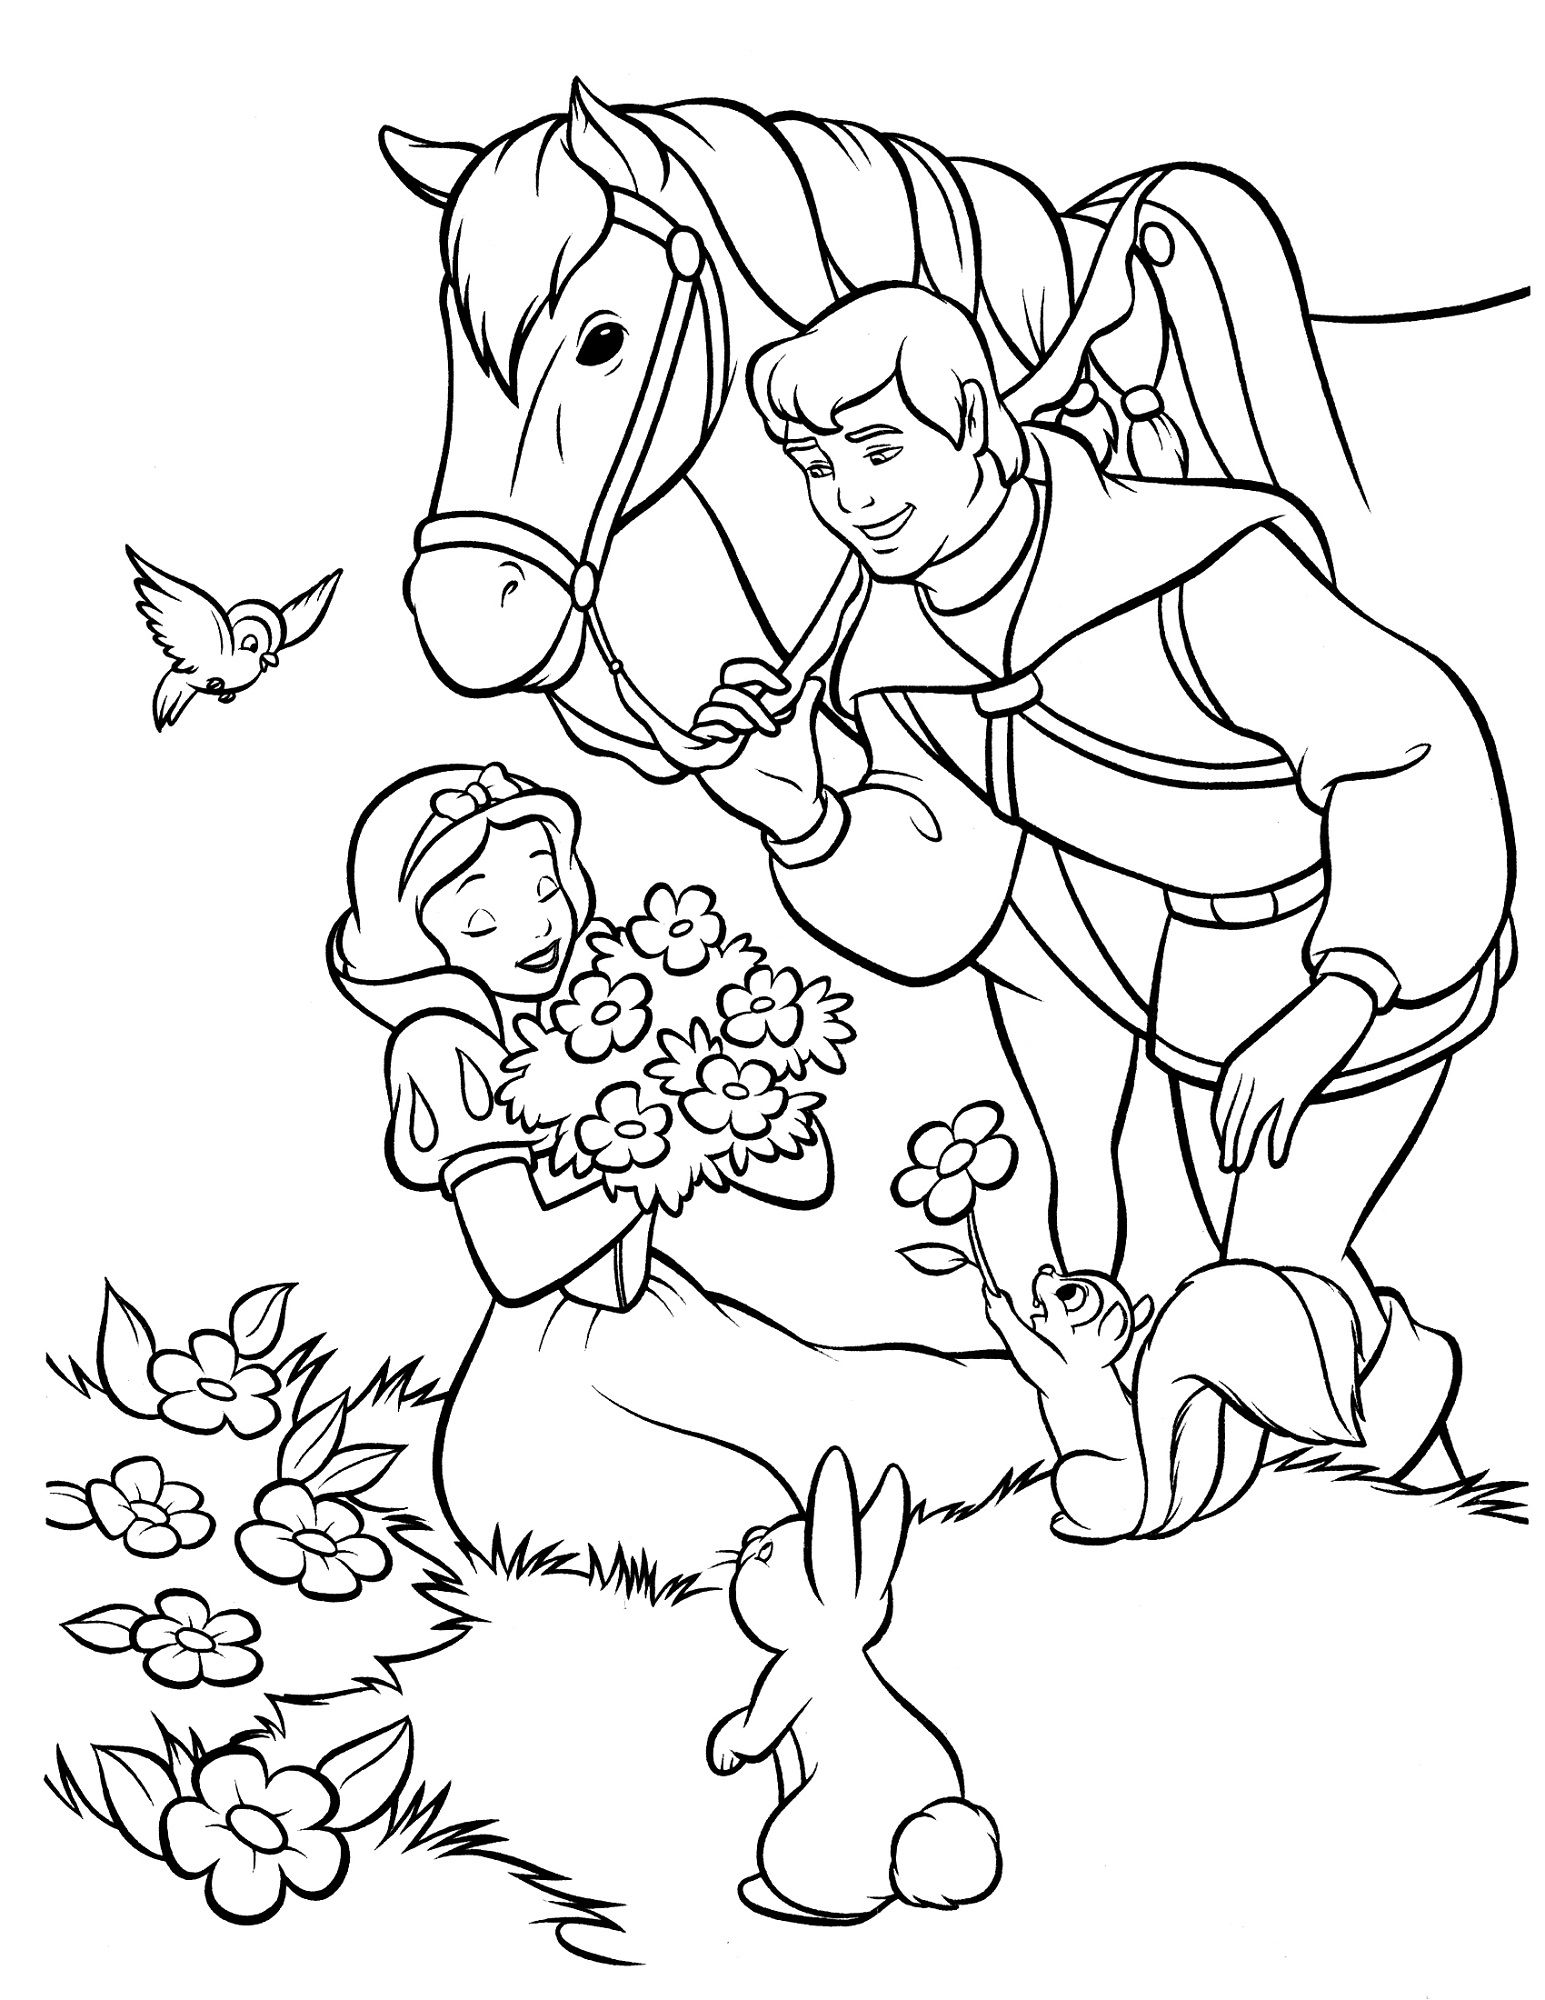 Snow White Color Pages to Print | Activity Shelter | color time with ...